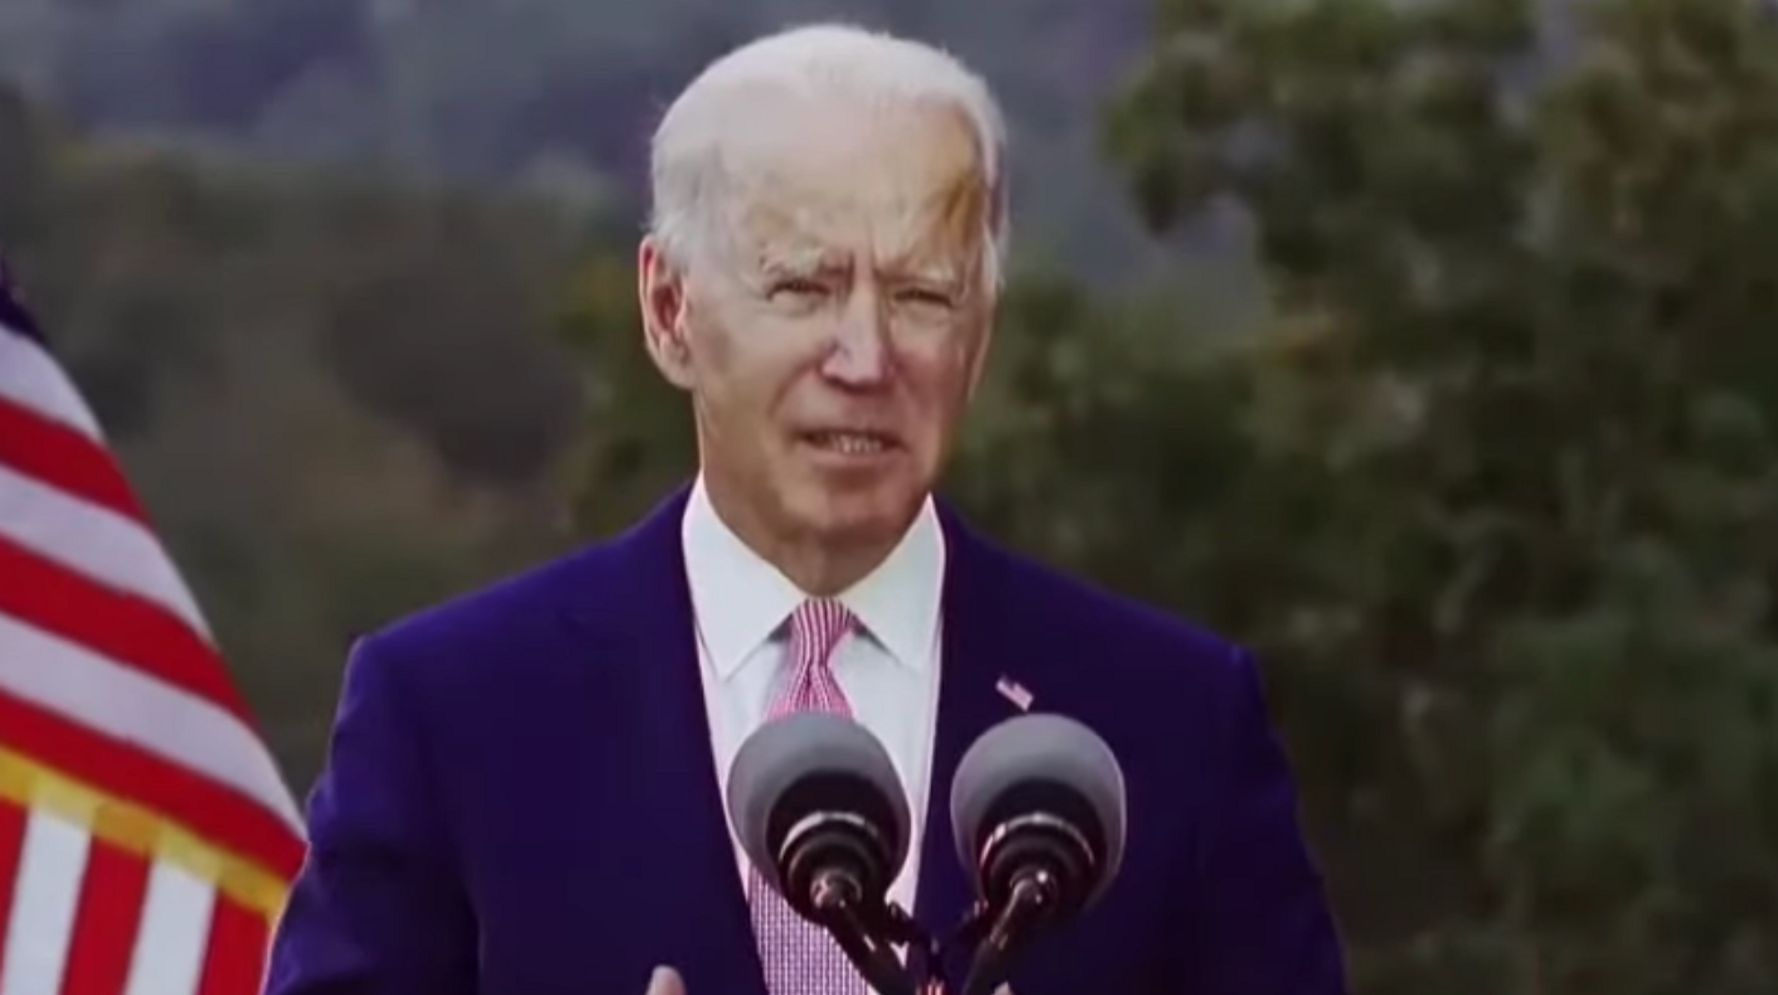 Trump Campaign Takes Biden's Pope Francis Quote Out Of Context In Deceptive Video